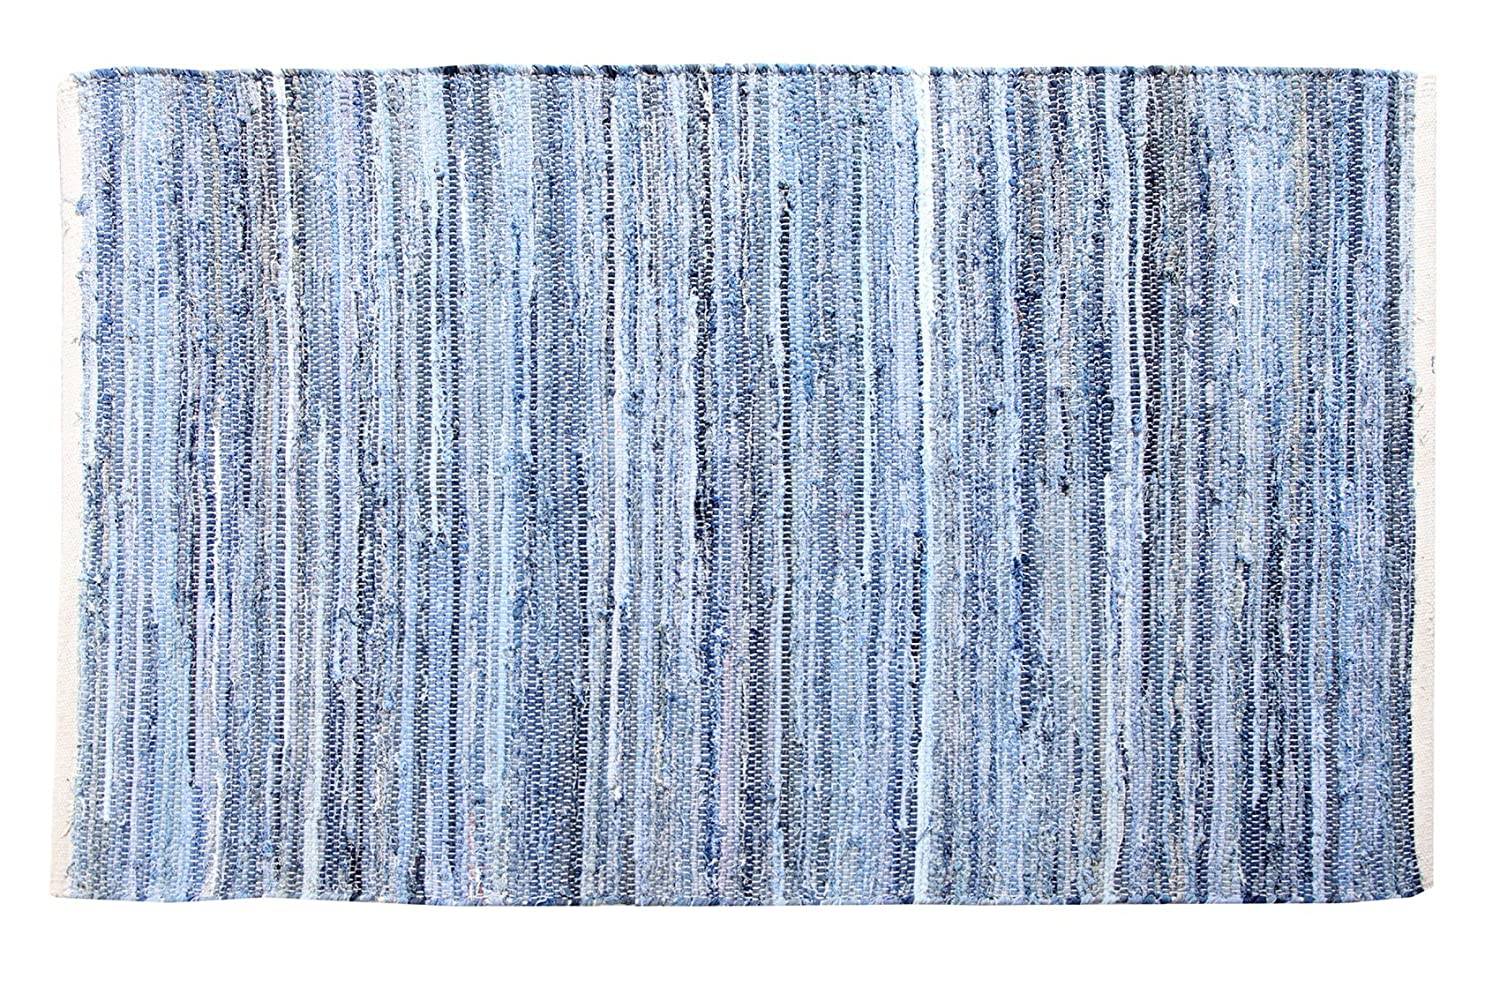 EHC 100 Percent Recycled Cotton Handmade Denim Chindi Floor Rug, 60 x 90 cm Elite Housewares E9-DNMCH6090